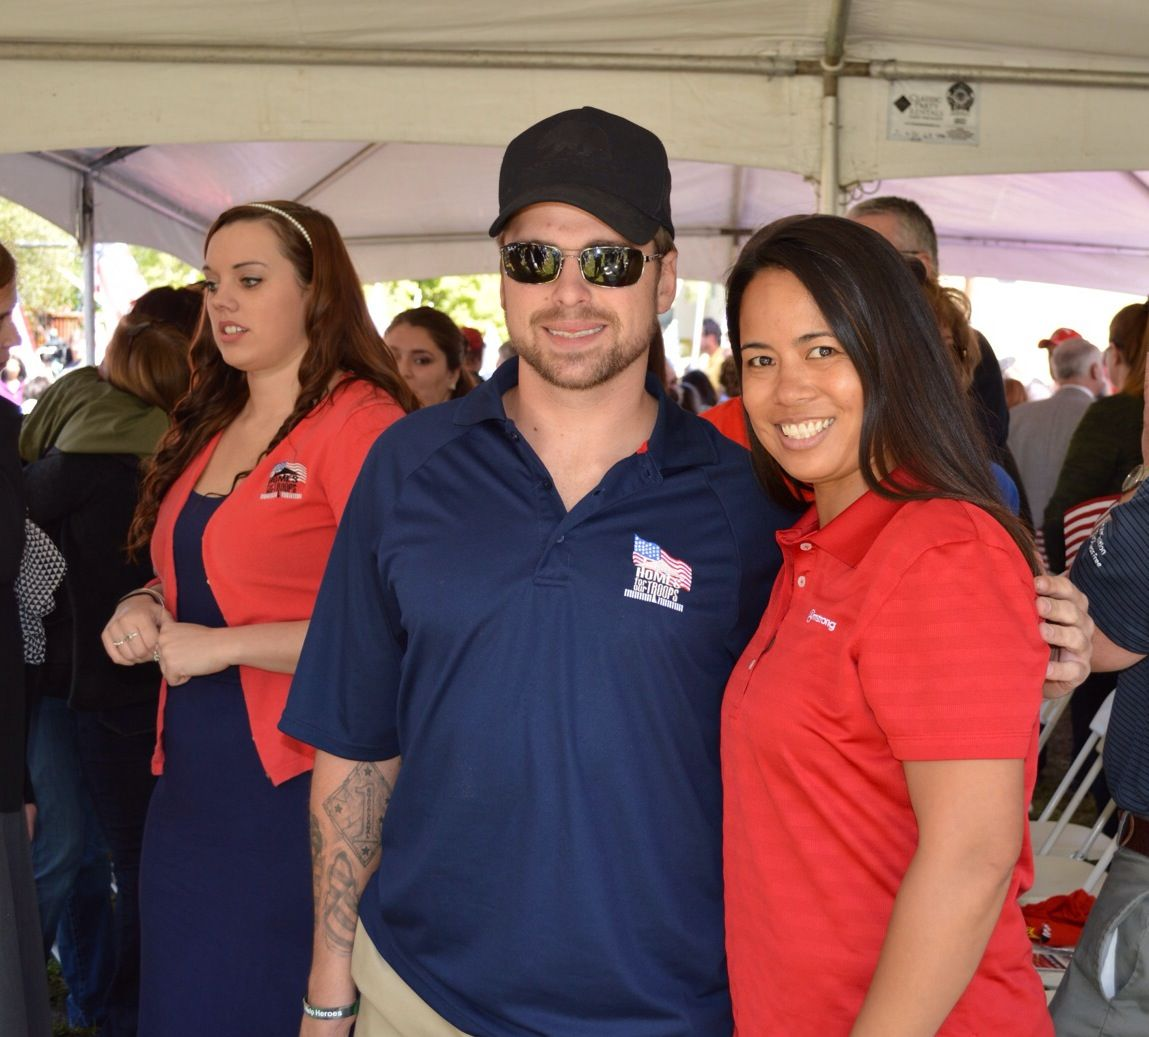 Cpl Joshua Hotaling and Tanya Evangelista of Armstrong at the ground breaking ceremony for Cpl Hotaling's new home.